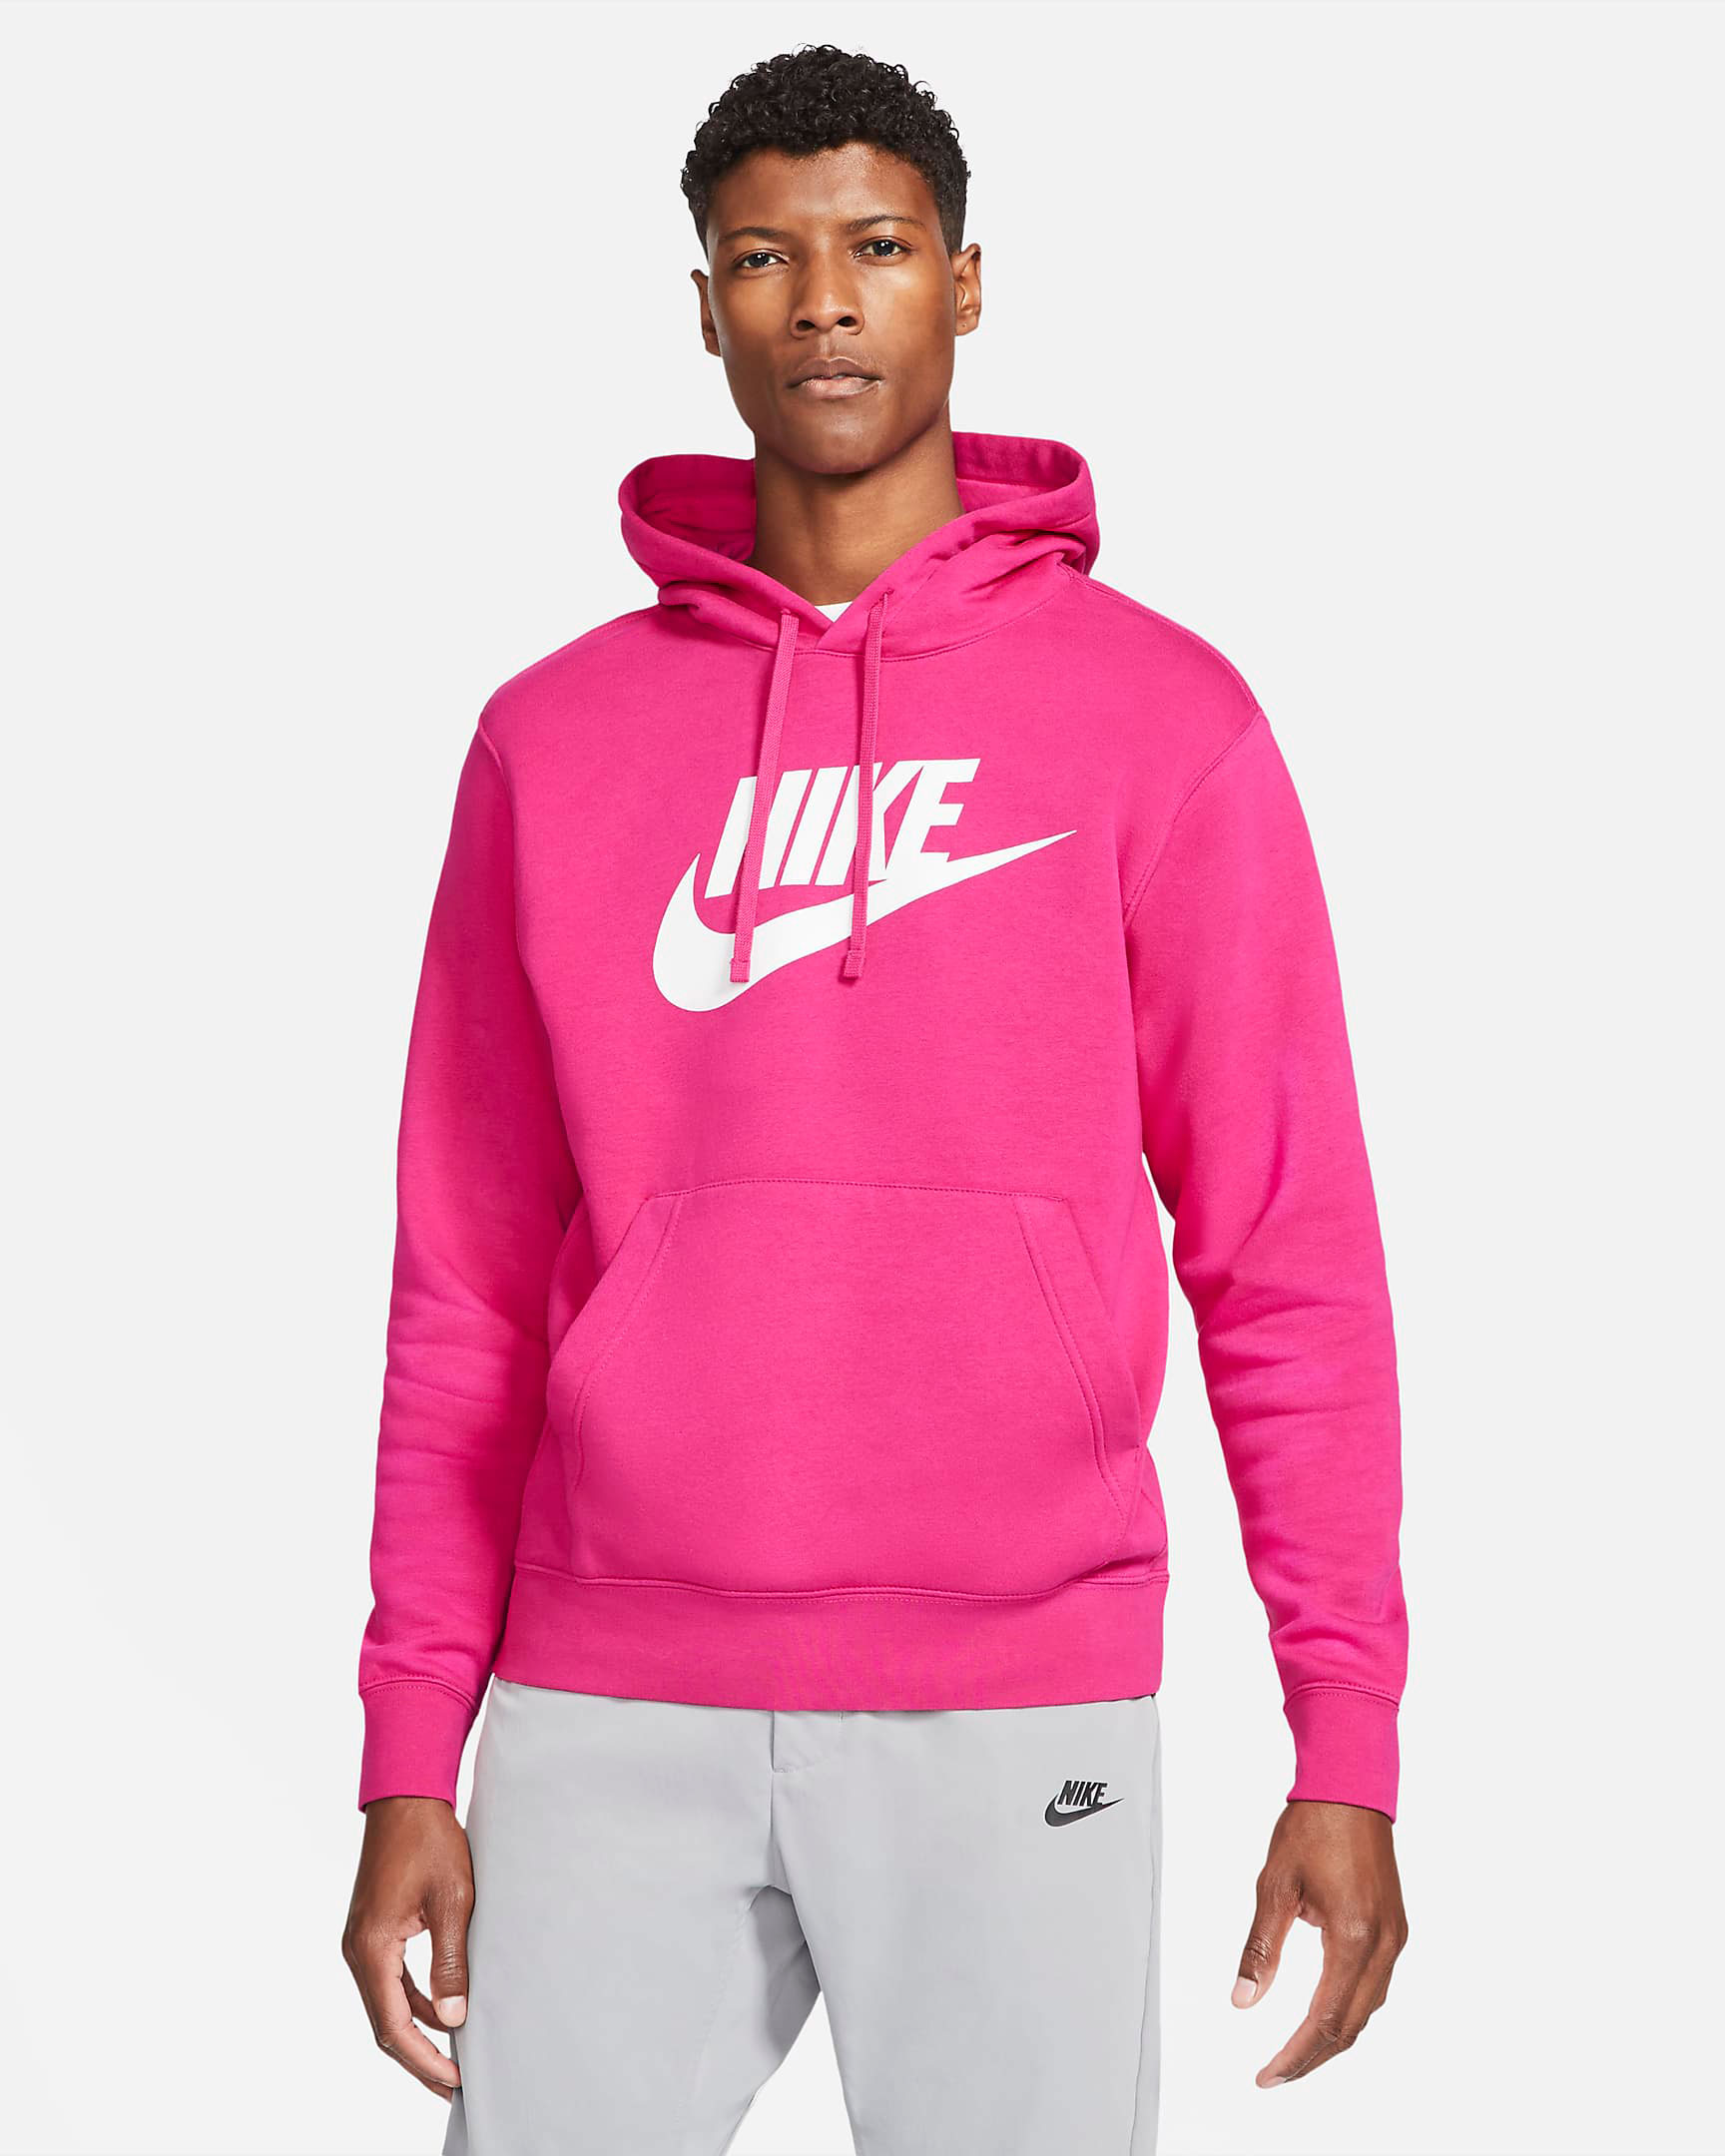 nike-club-fleece-graphic-hoodie-fireberry-pink